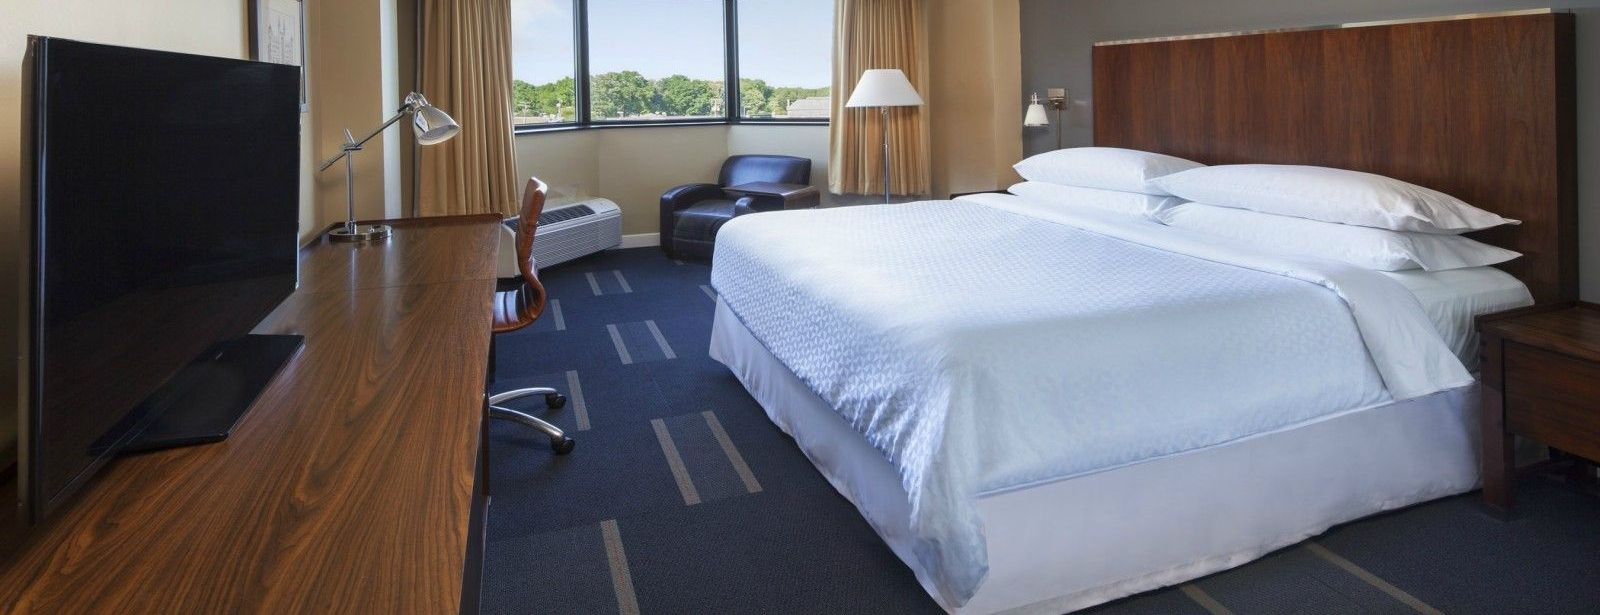 Richmond Accommodations - Accessible King Room